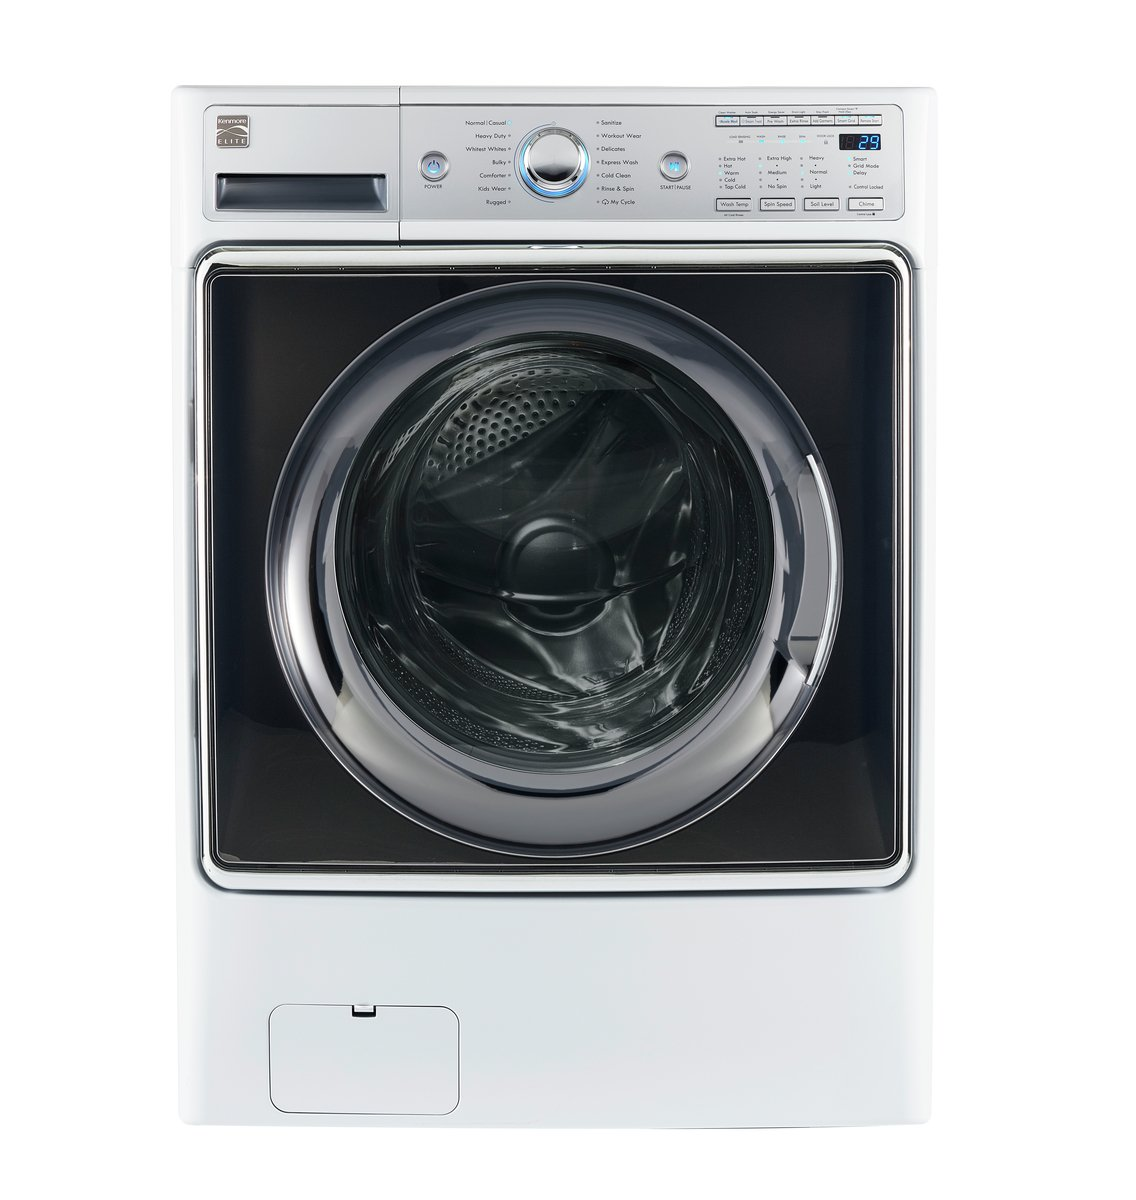 Kenmore Smart 41982 5.2 cu.ft. Front Load Washer with Accela Wash Technology in White  - Works with Amazon Alexa, includes delivery and hookup (Available in select cities only) by Kenmore